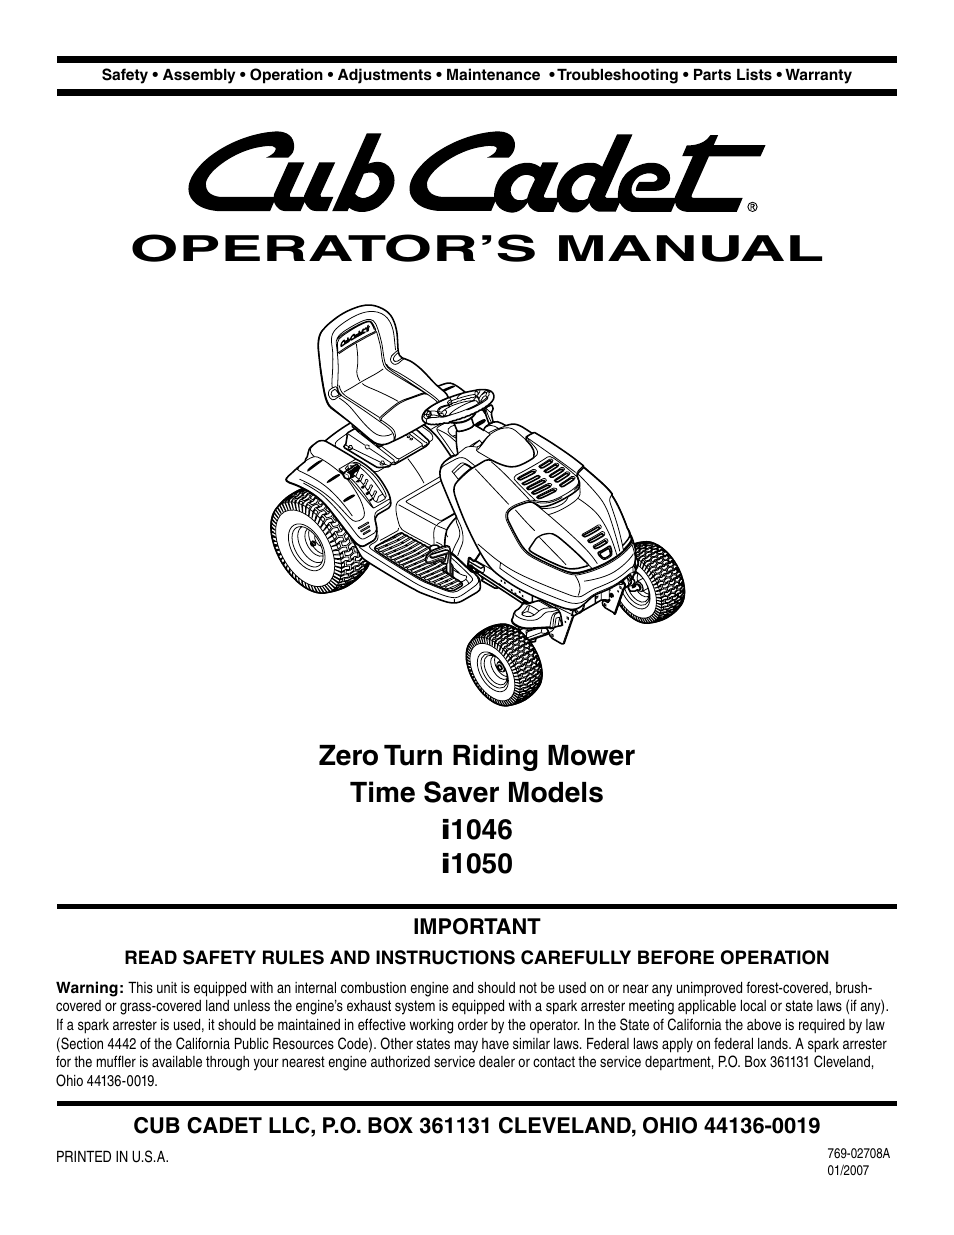 cub cadet i1050 user manual 36 pages also for i1046 rh manualsdir com cub cadet i1050 owners manual Cub Cadet I1050 Problems